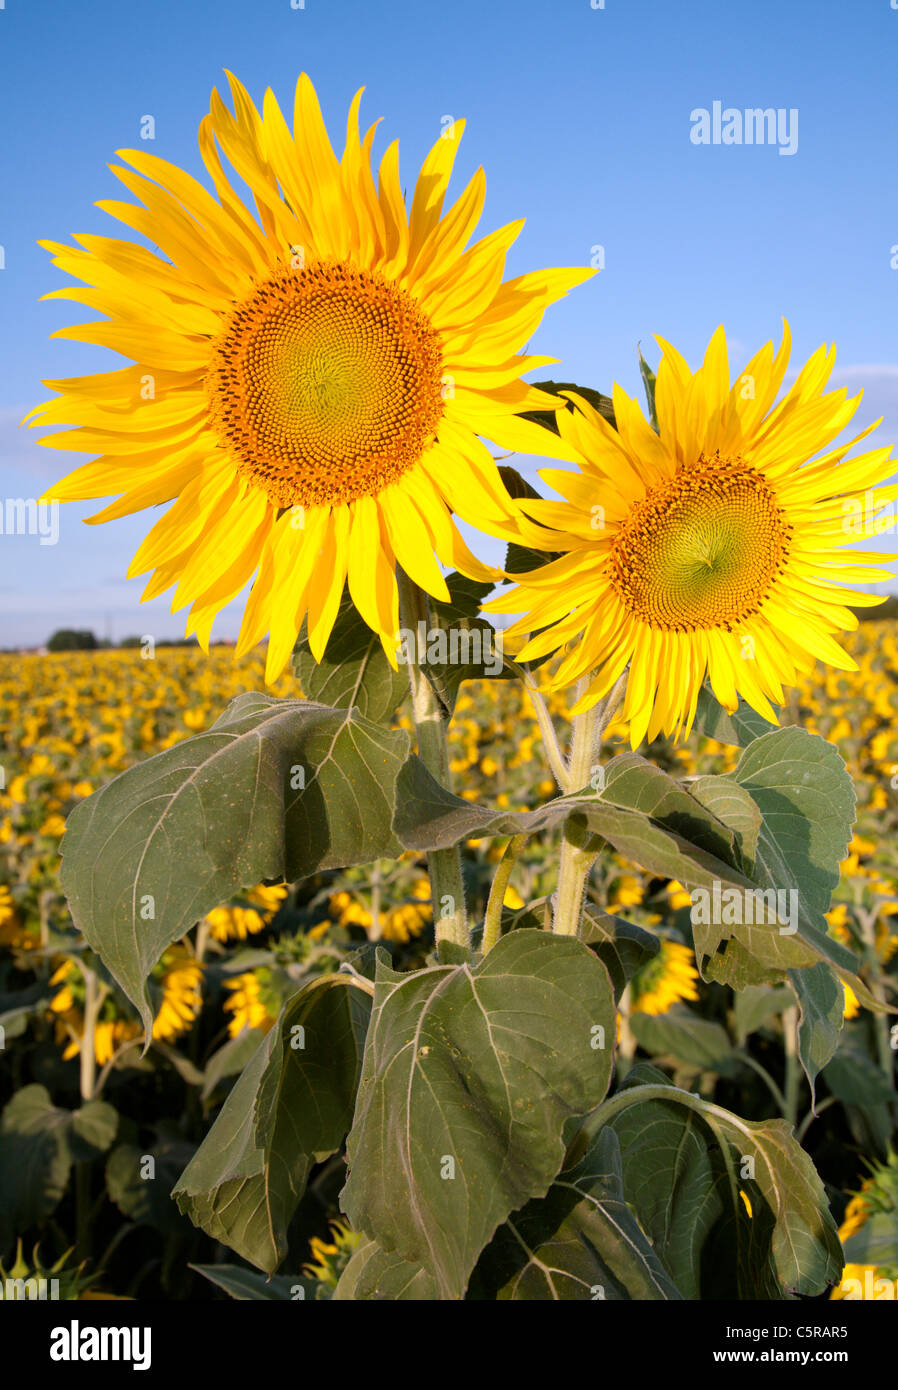 sunflowers and sky - Stock Image